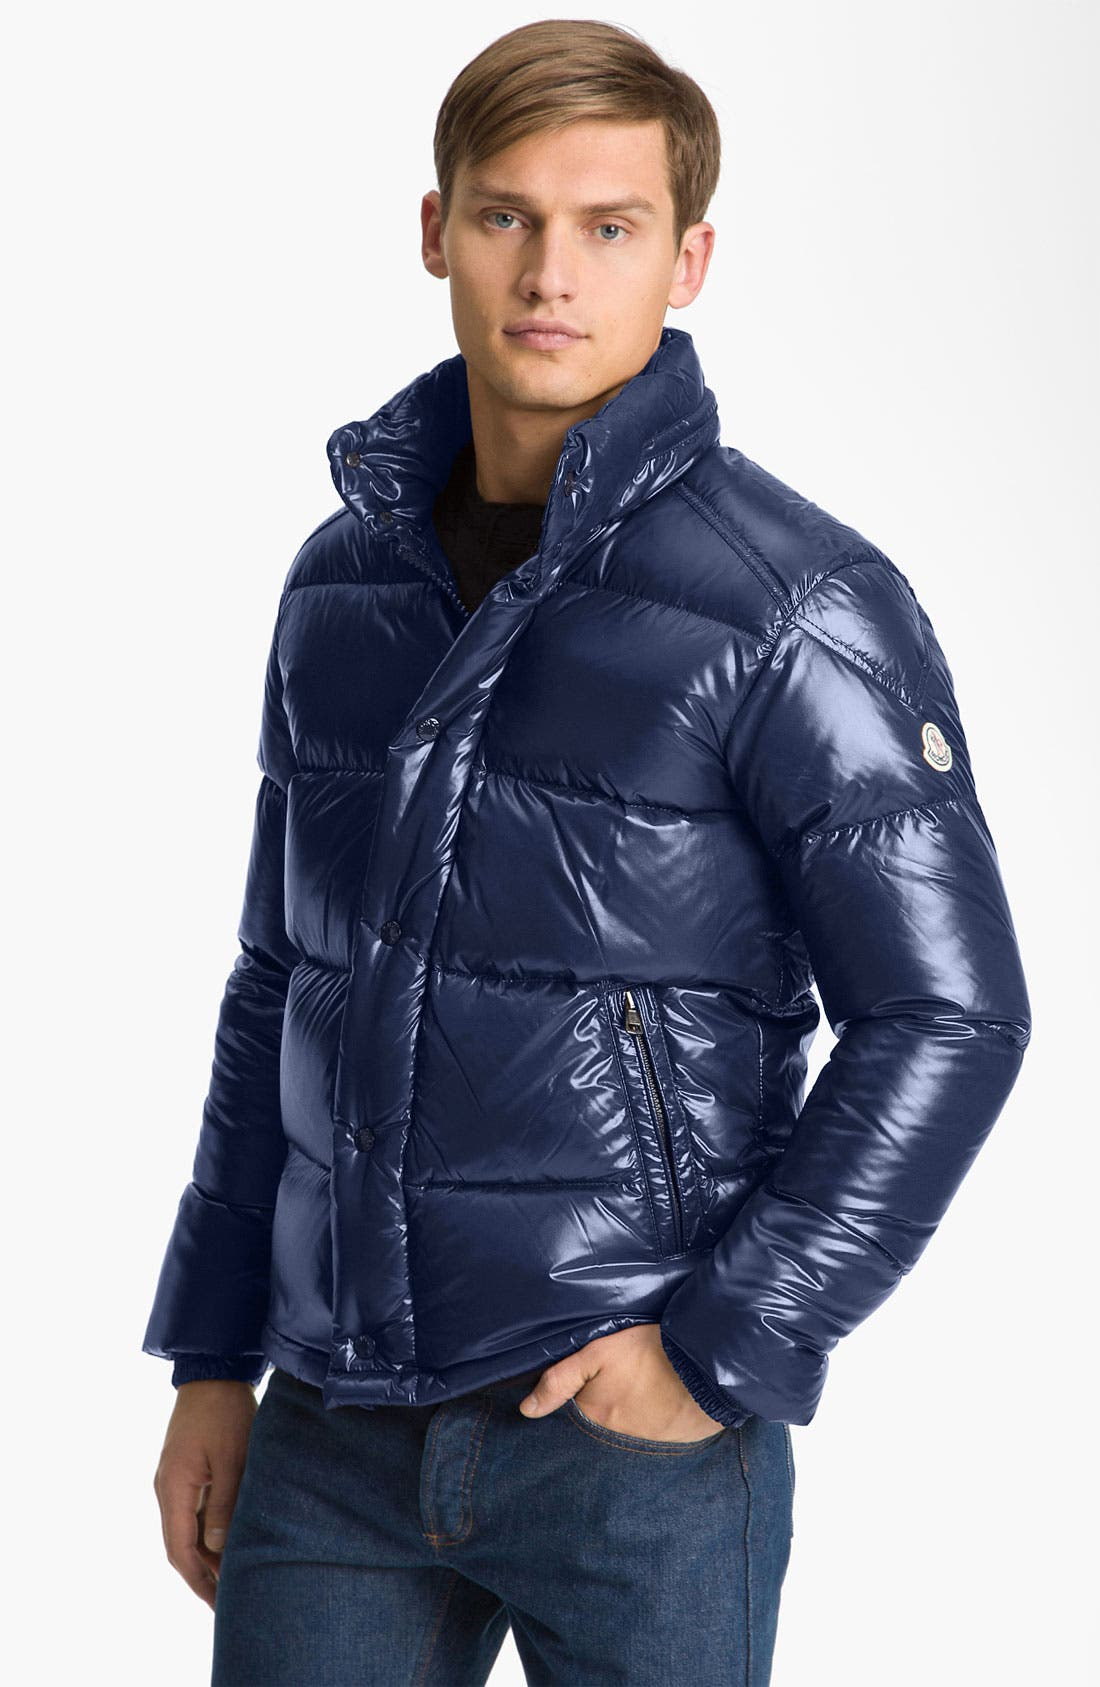 Alternate Image 1 Selected - Moncler 'Ever' Quilted Puffer Jacket